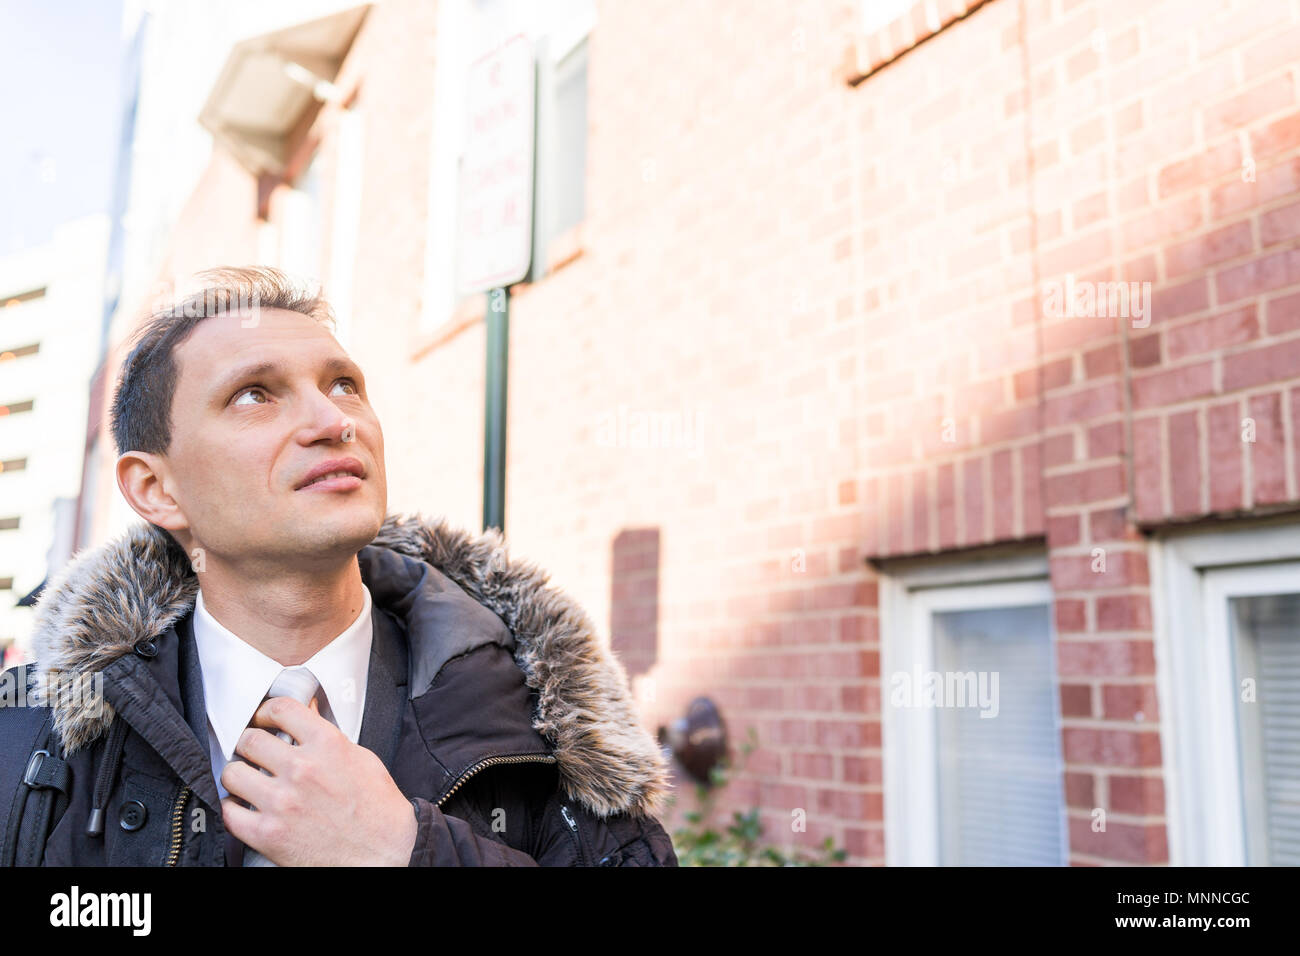 Handsome, attractive young serious happy businessman closeup face portrait standing in front of brick wall, fixing tie, in suit and tie on interview b - Stock Image